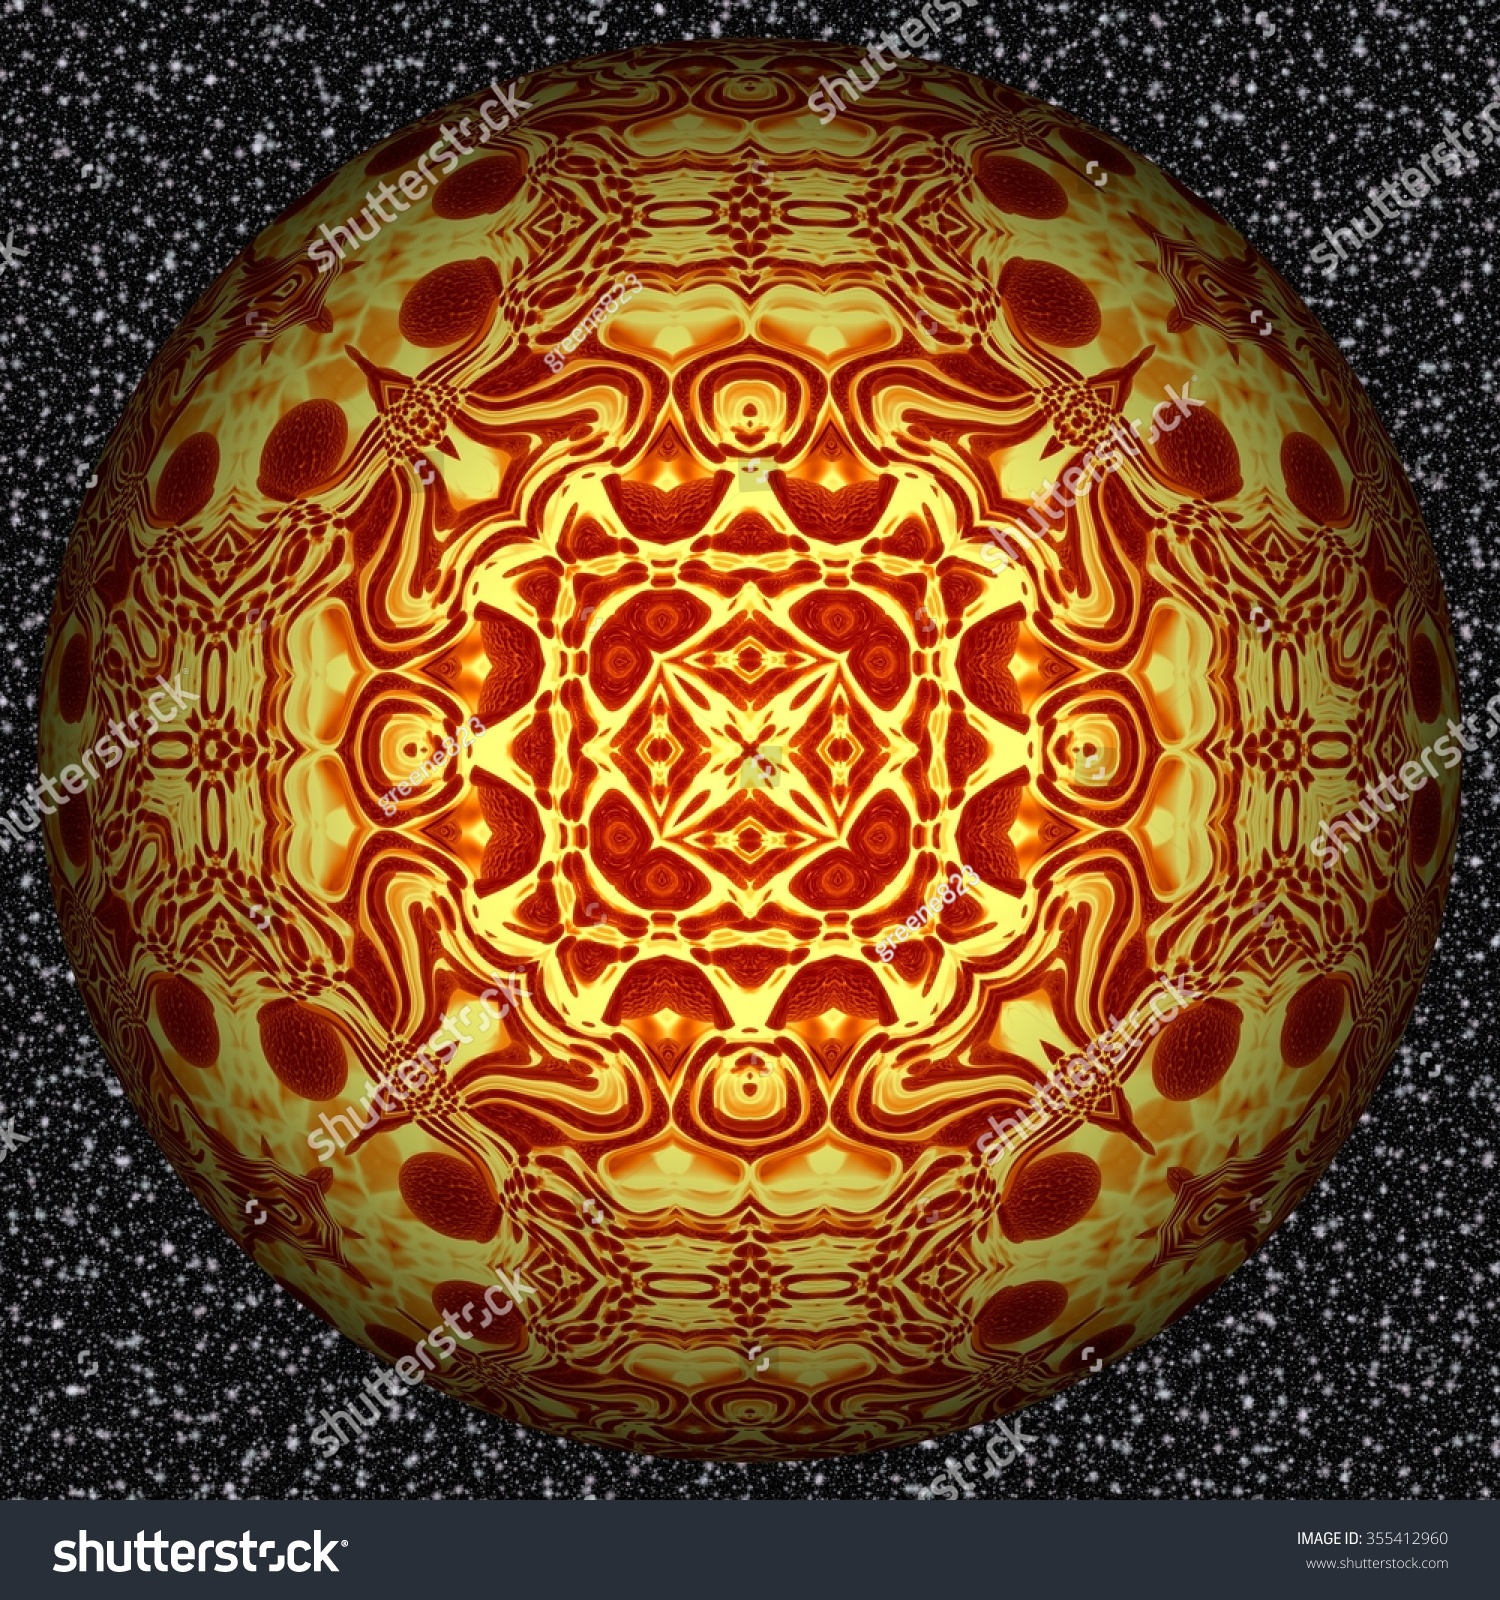 Abstract decorative sphere ball pattern stock